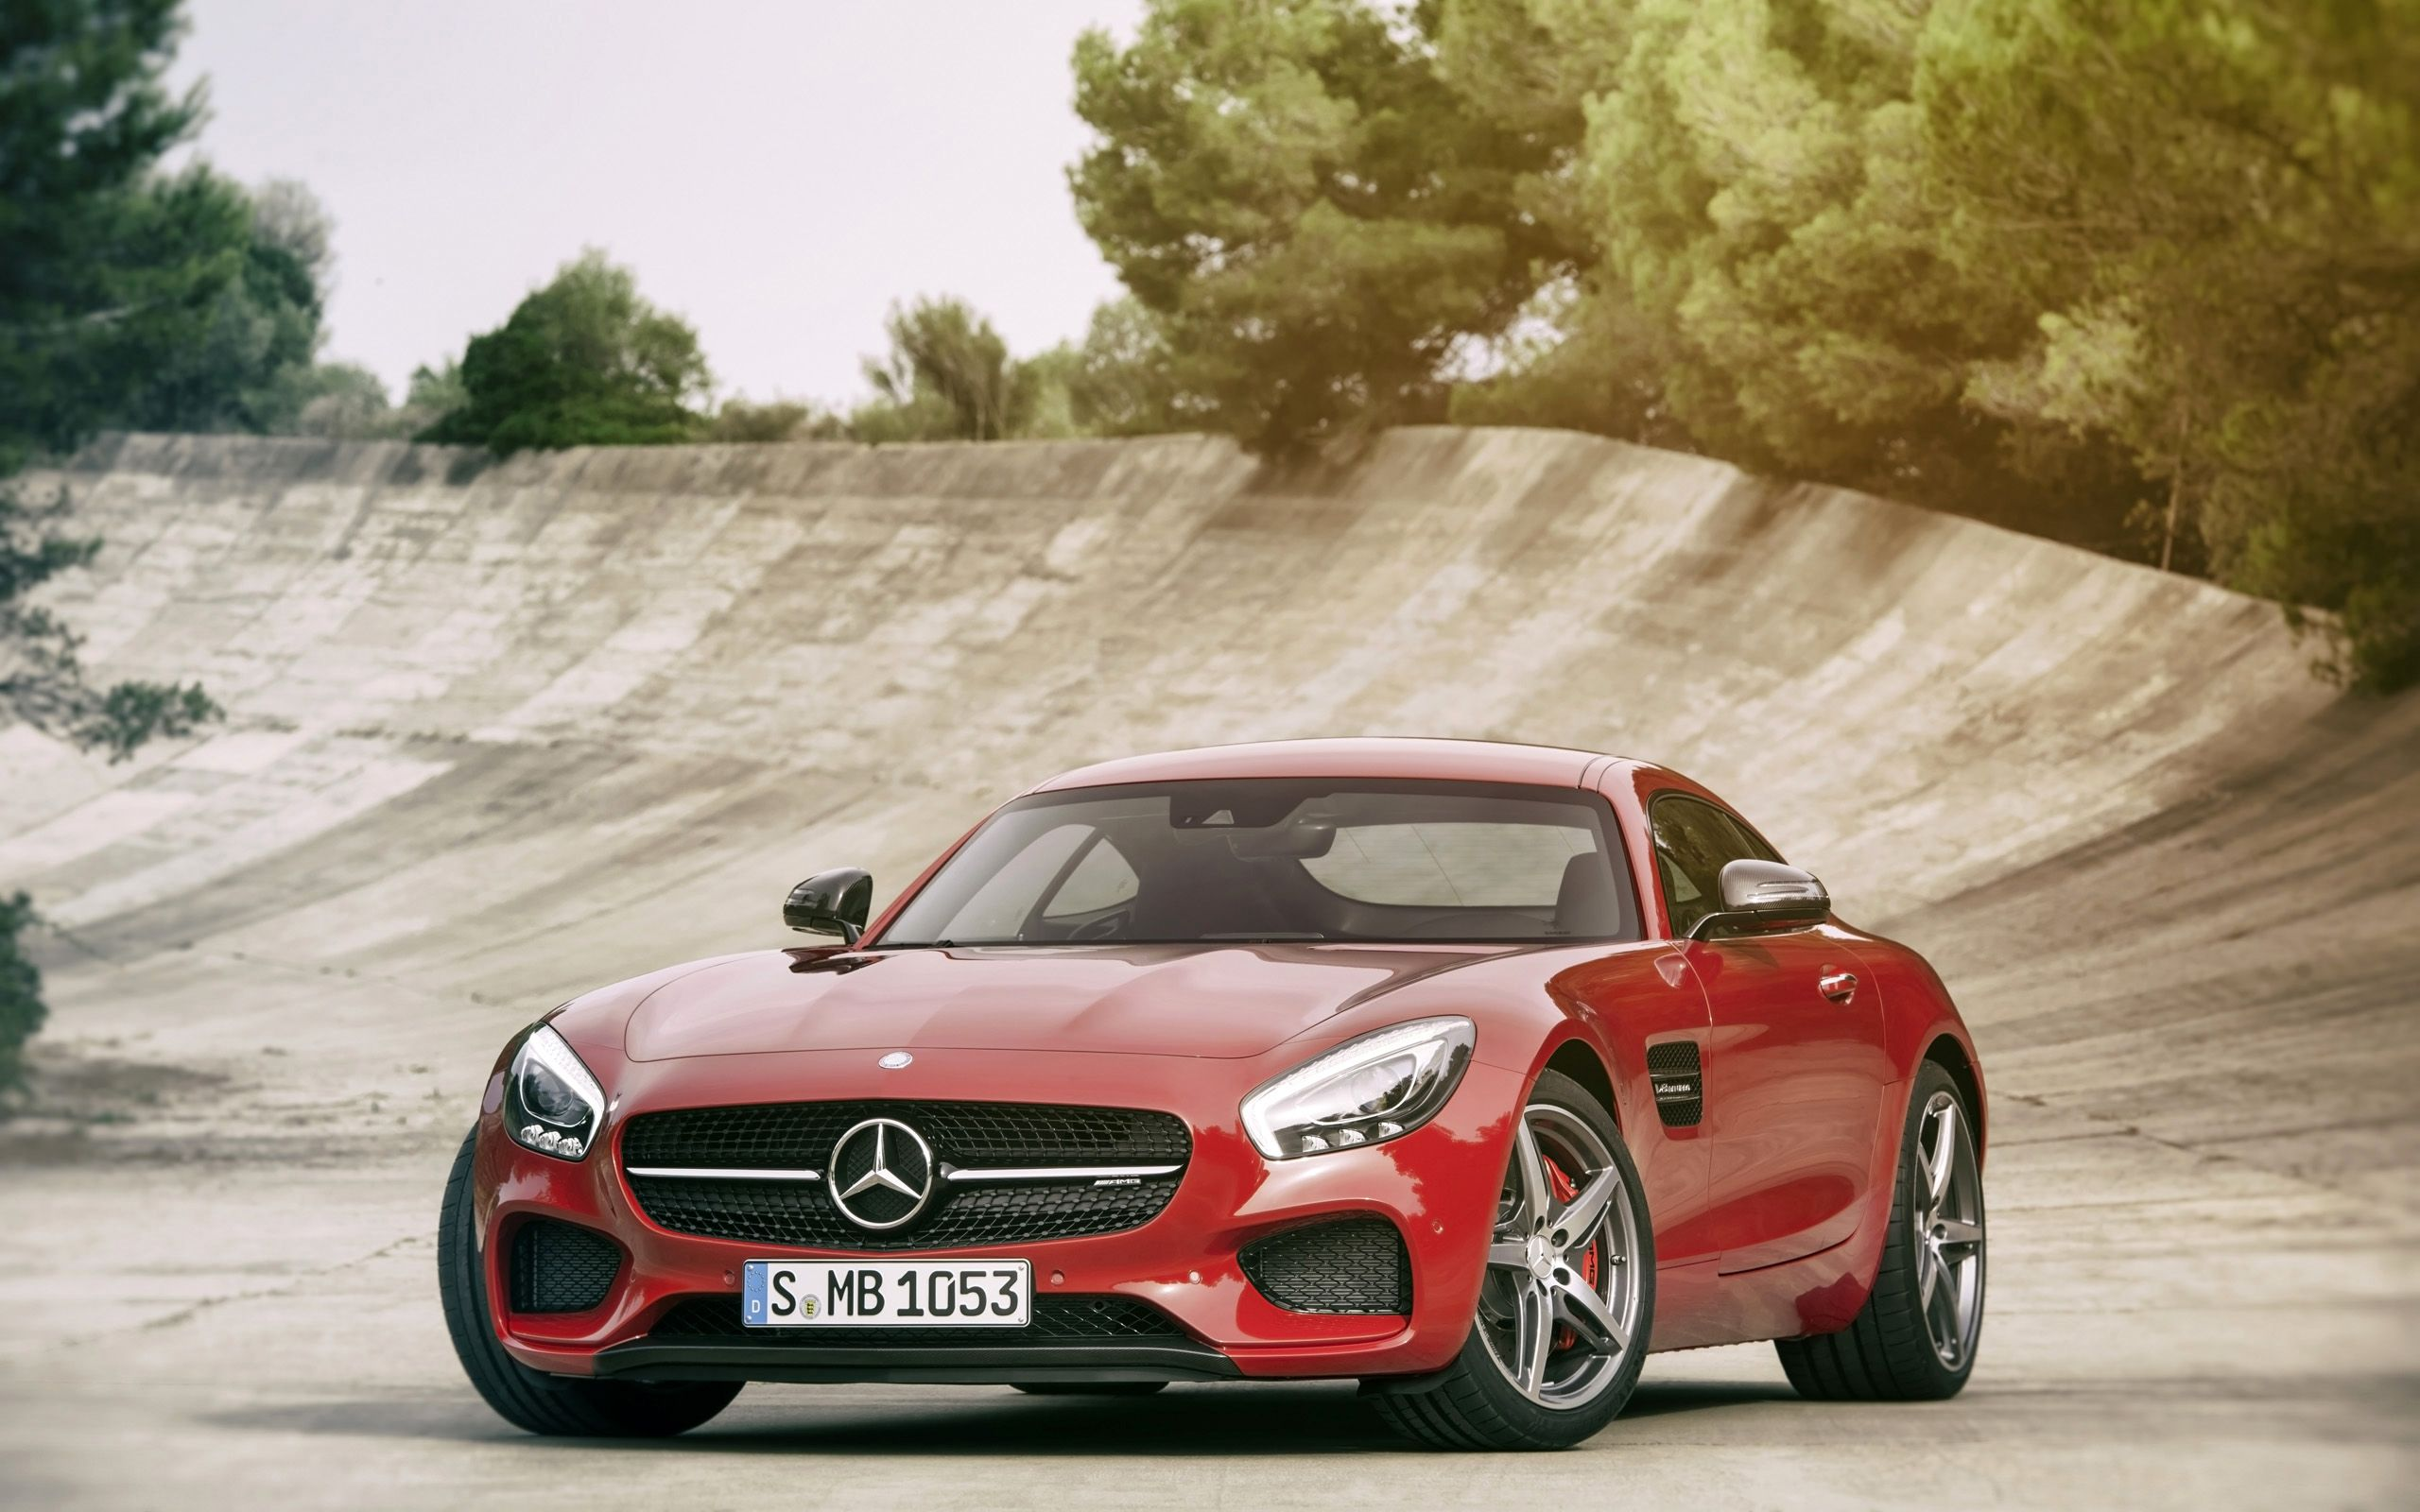 Marvelous 2015 Mercedes AMG GT 4 Wallpaper | HD Car Wallpapers